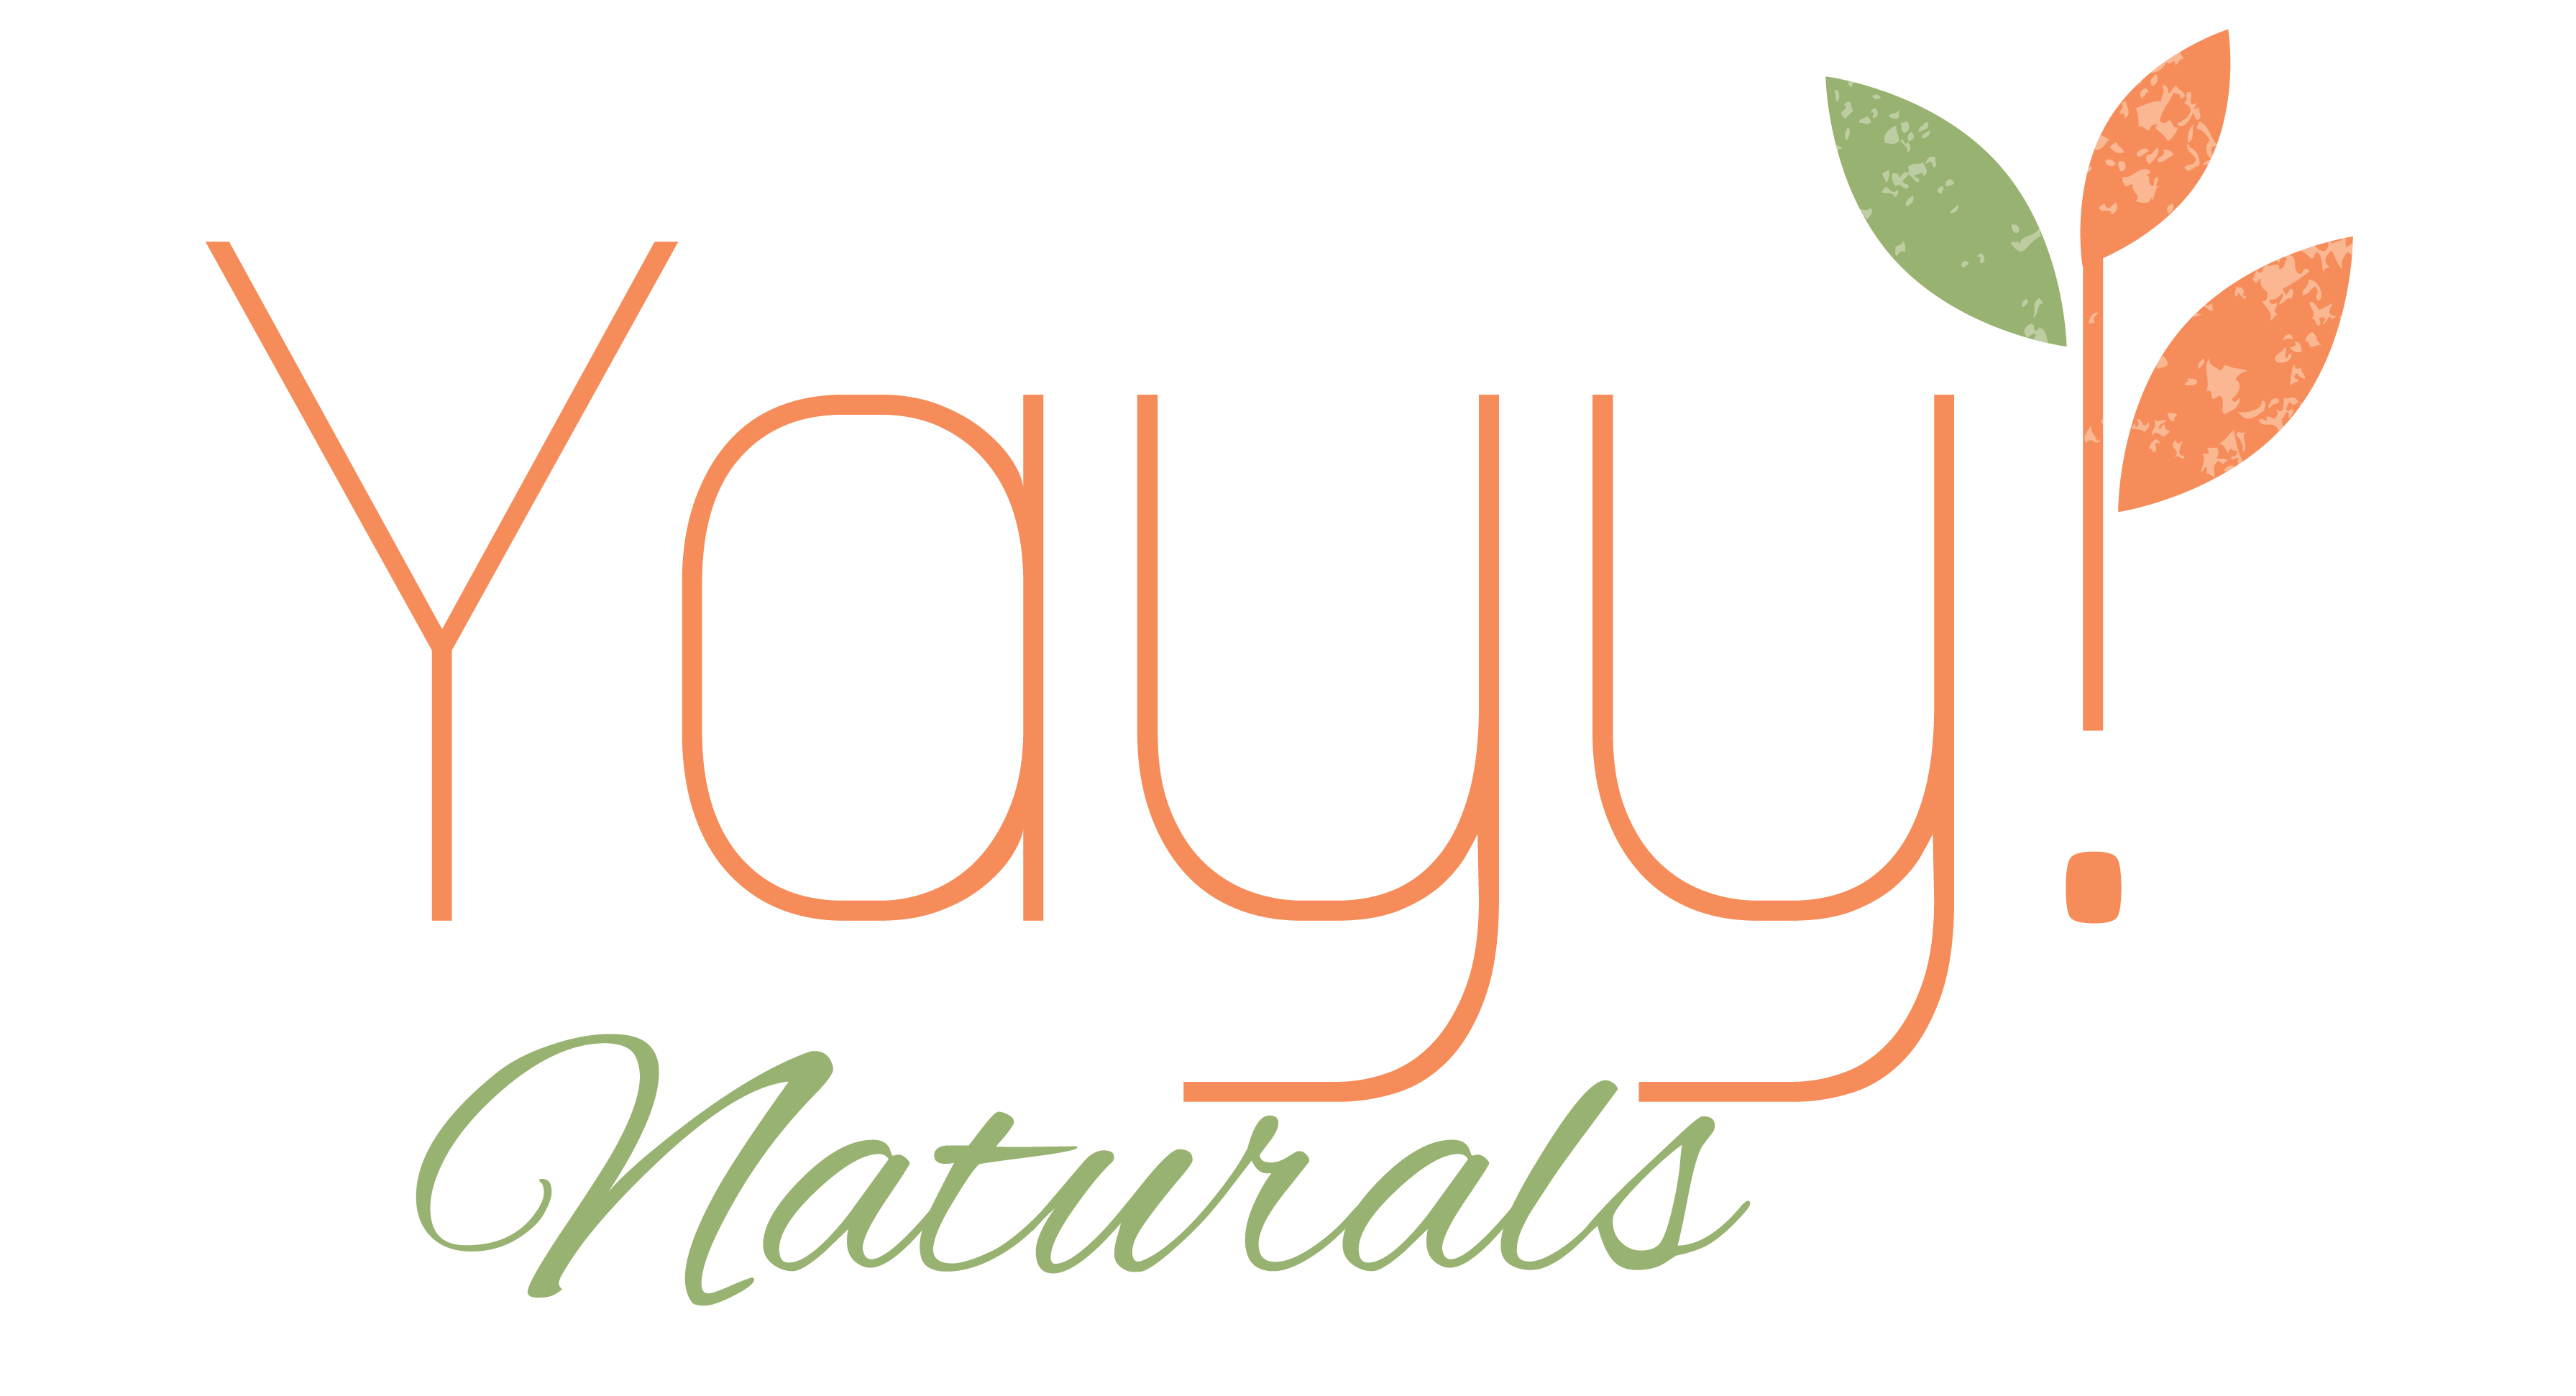 Yayy Naturals Launches India's First Youth Centric Natural Personal Care Brand Yayy! Naturals